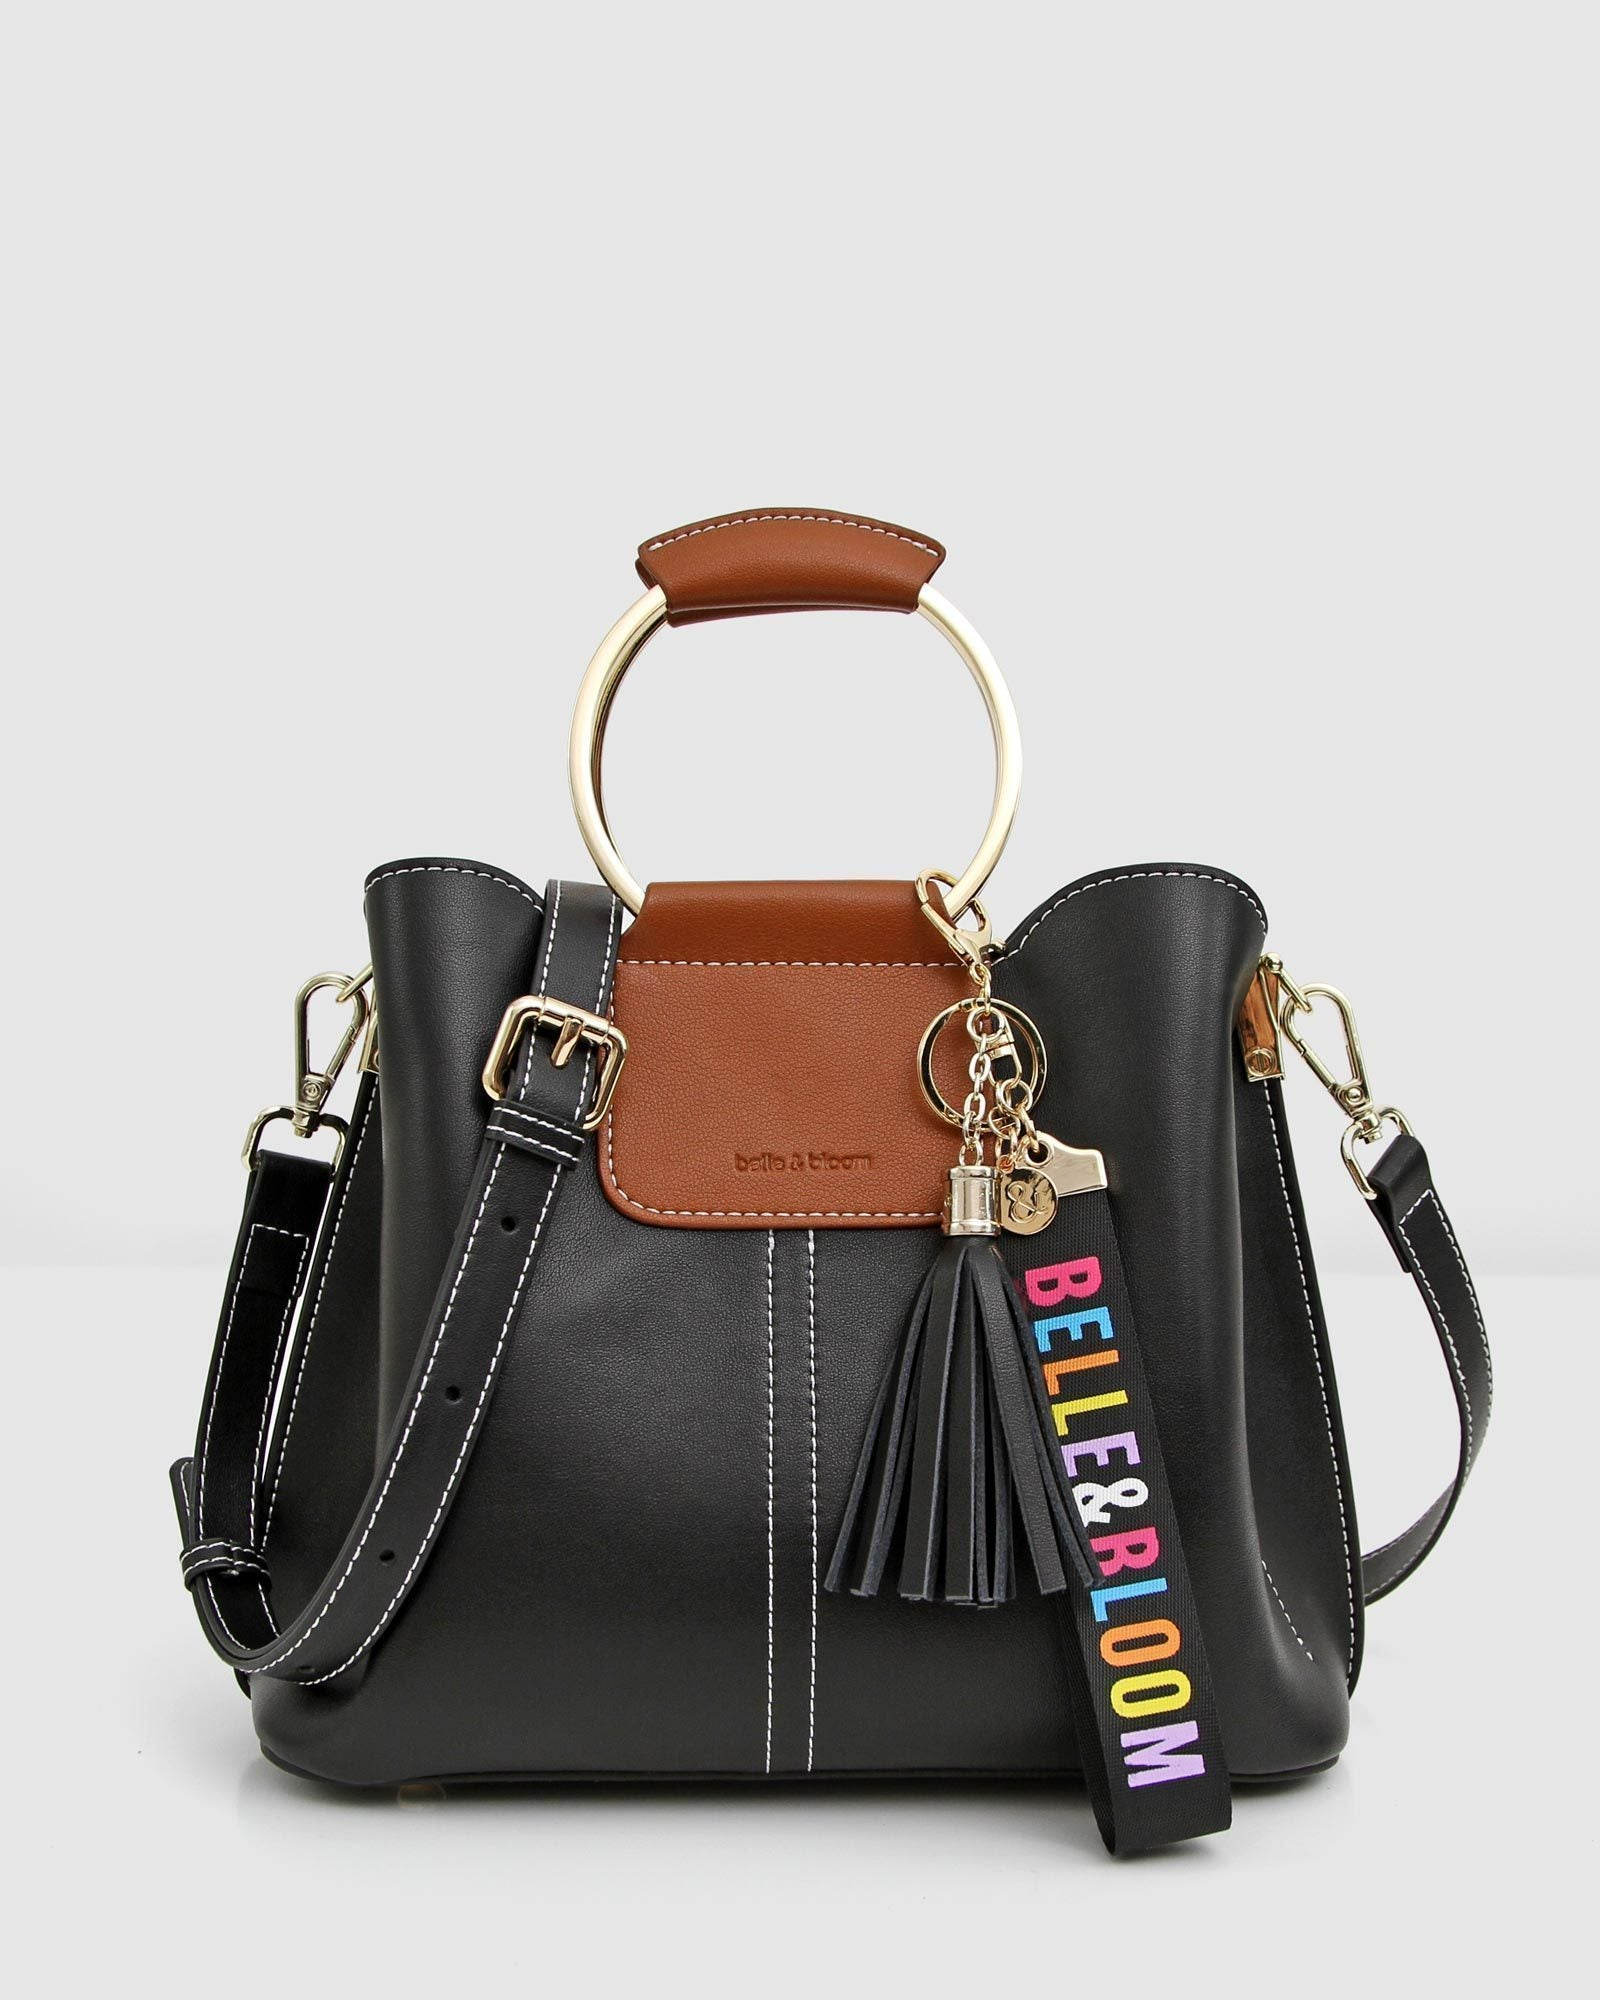 black-and-brown-leather-bag-front.jpg